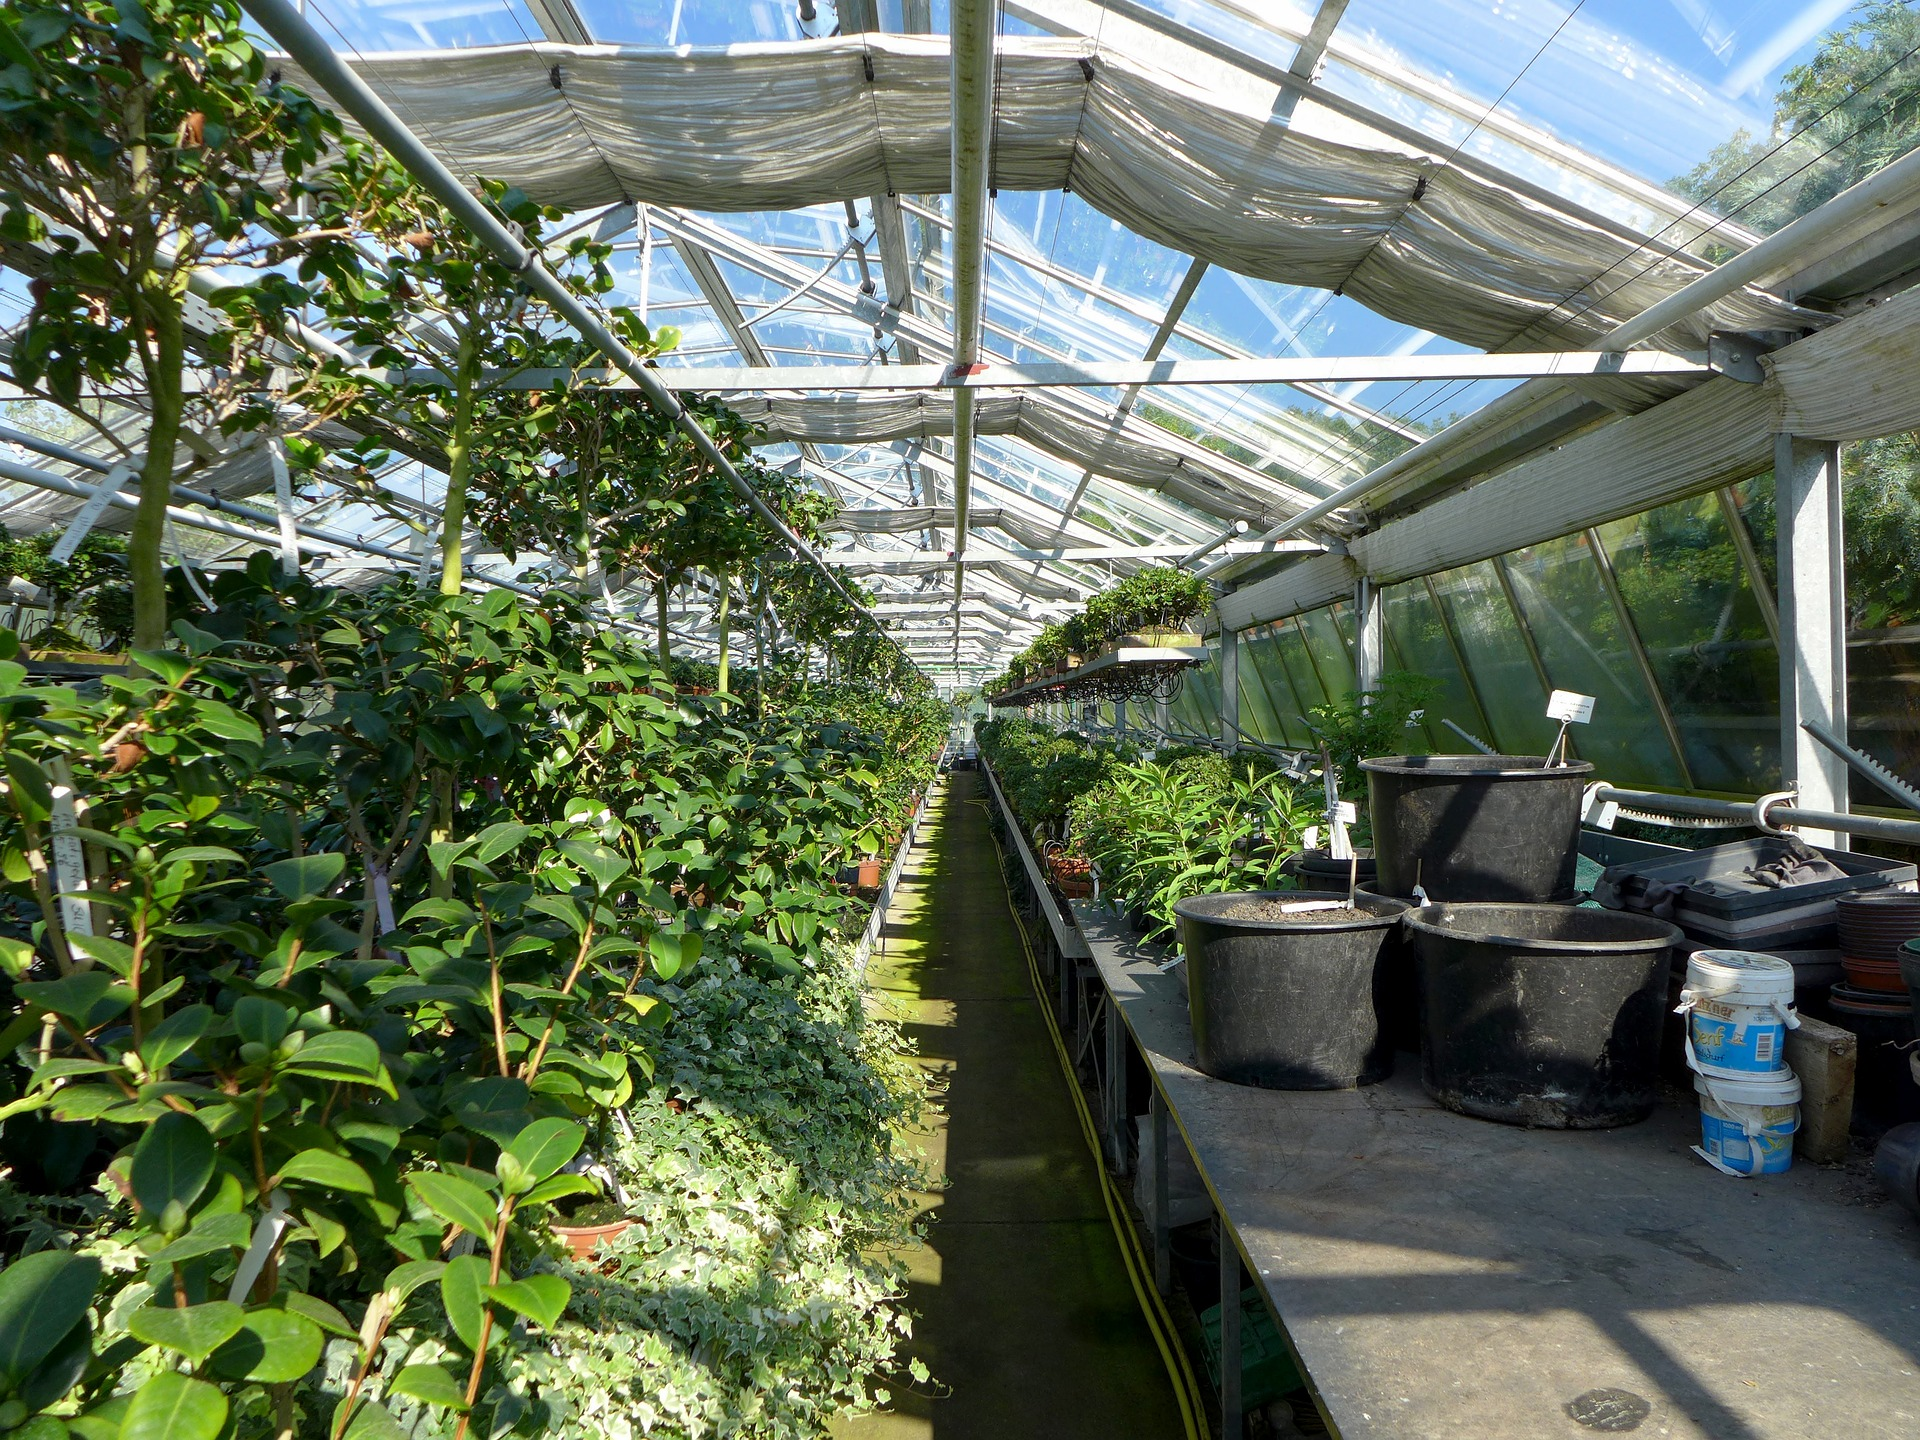 USDA Studies Plant Nursery Runoff Remediation